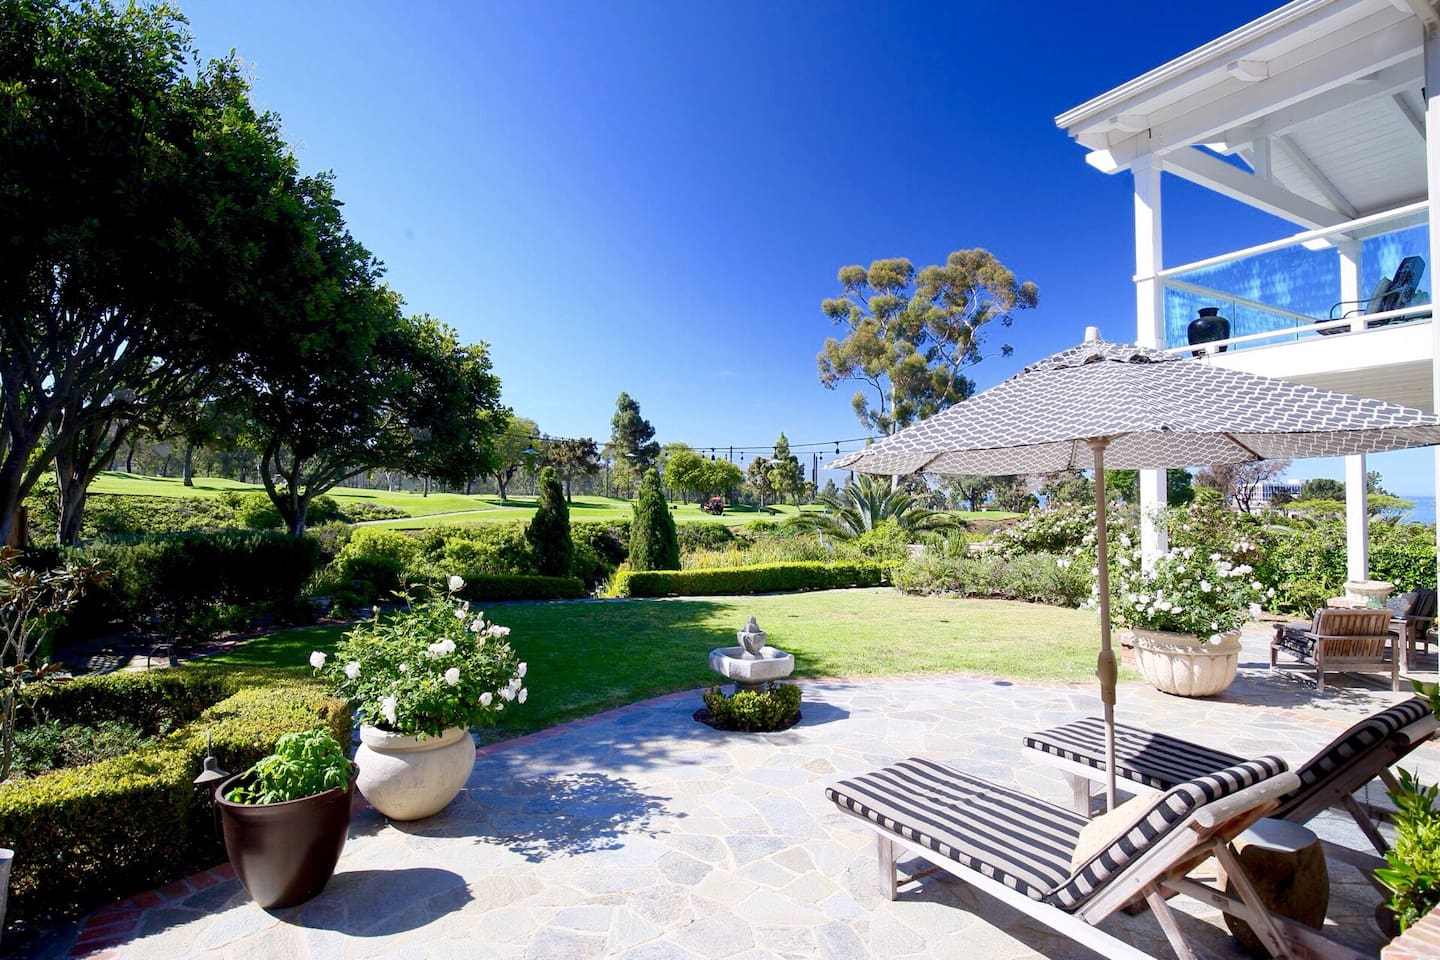 Come stay in this beautiful private backyard, close to everything, but secluded for serenity.